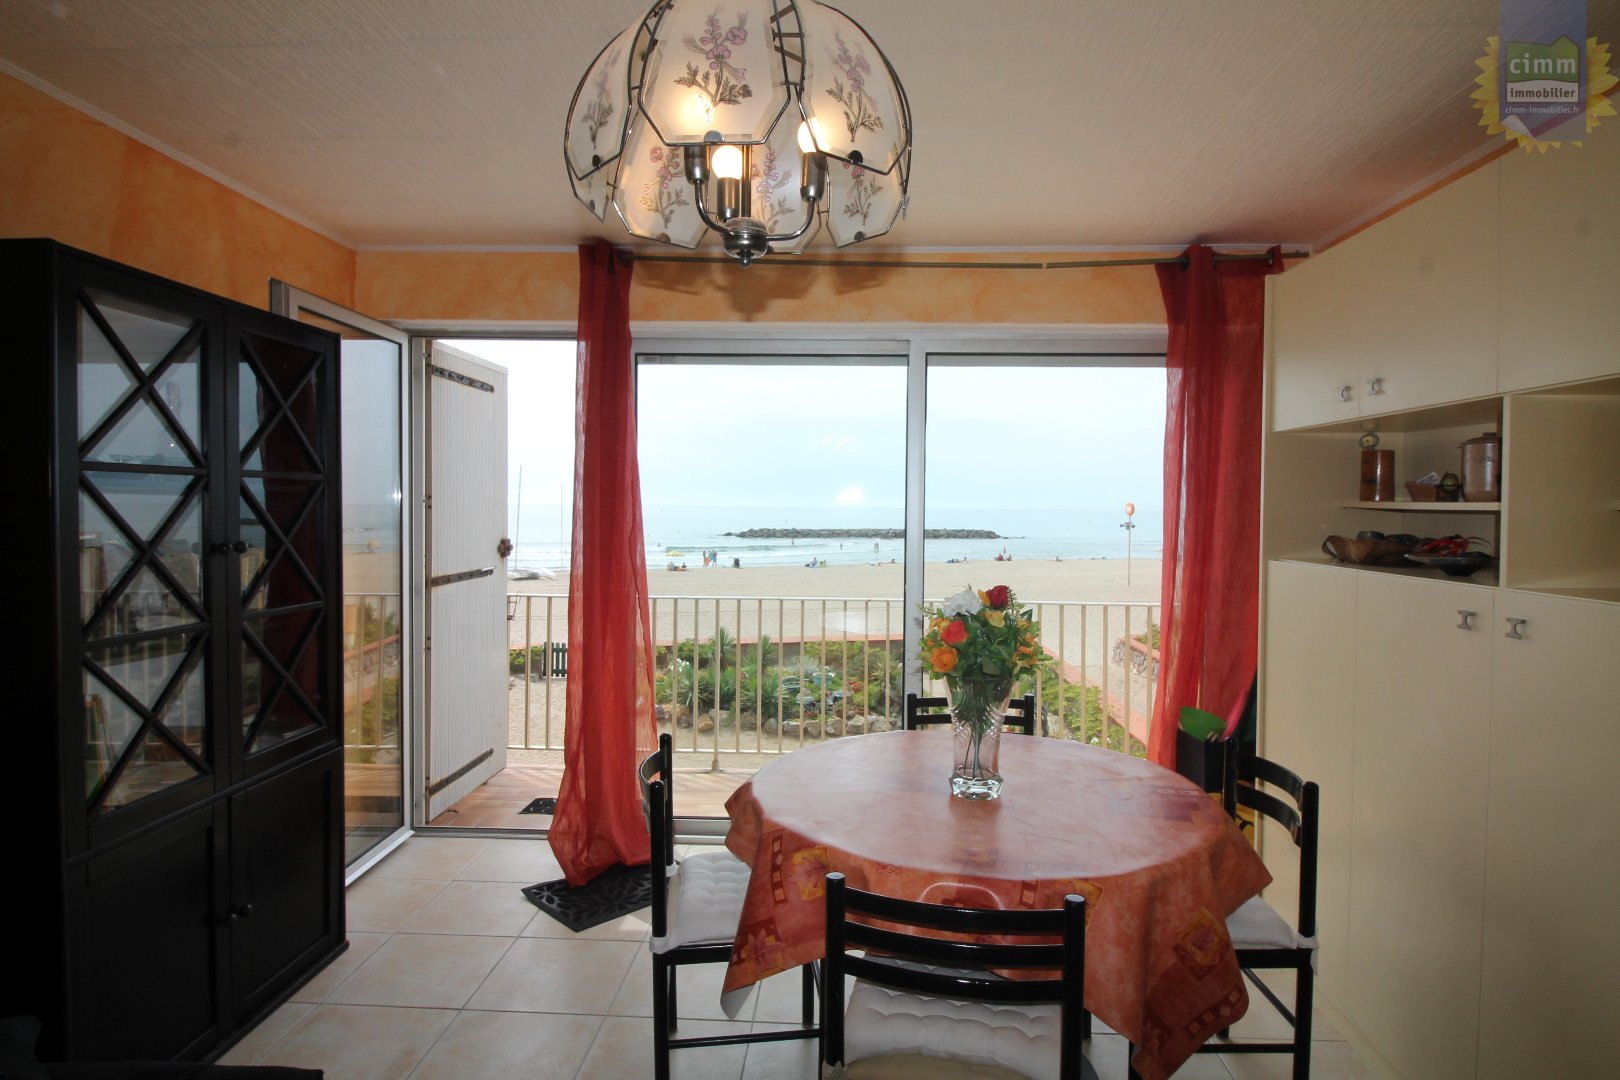 Image - Appartement - VALRAS PLAGE - Location Vacances - 46m² - IMMOPLAGE VALRAS-PLAGE